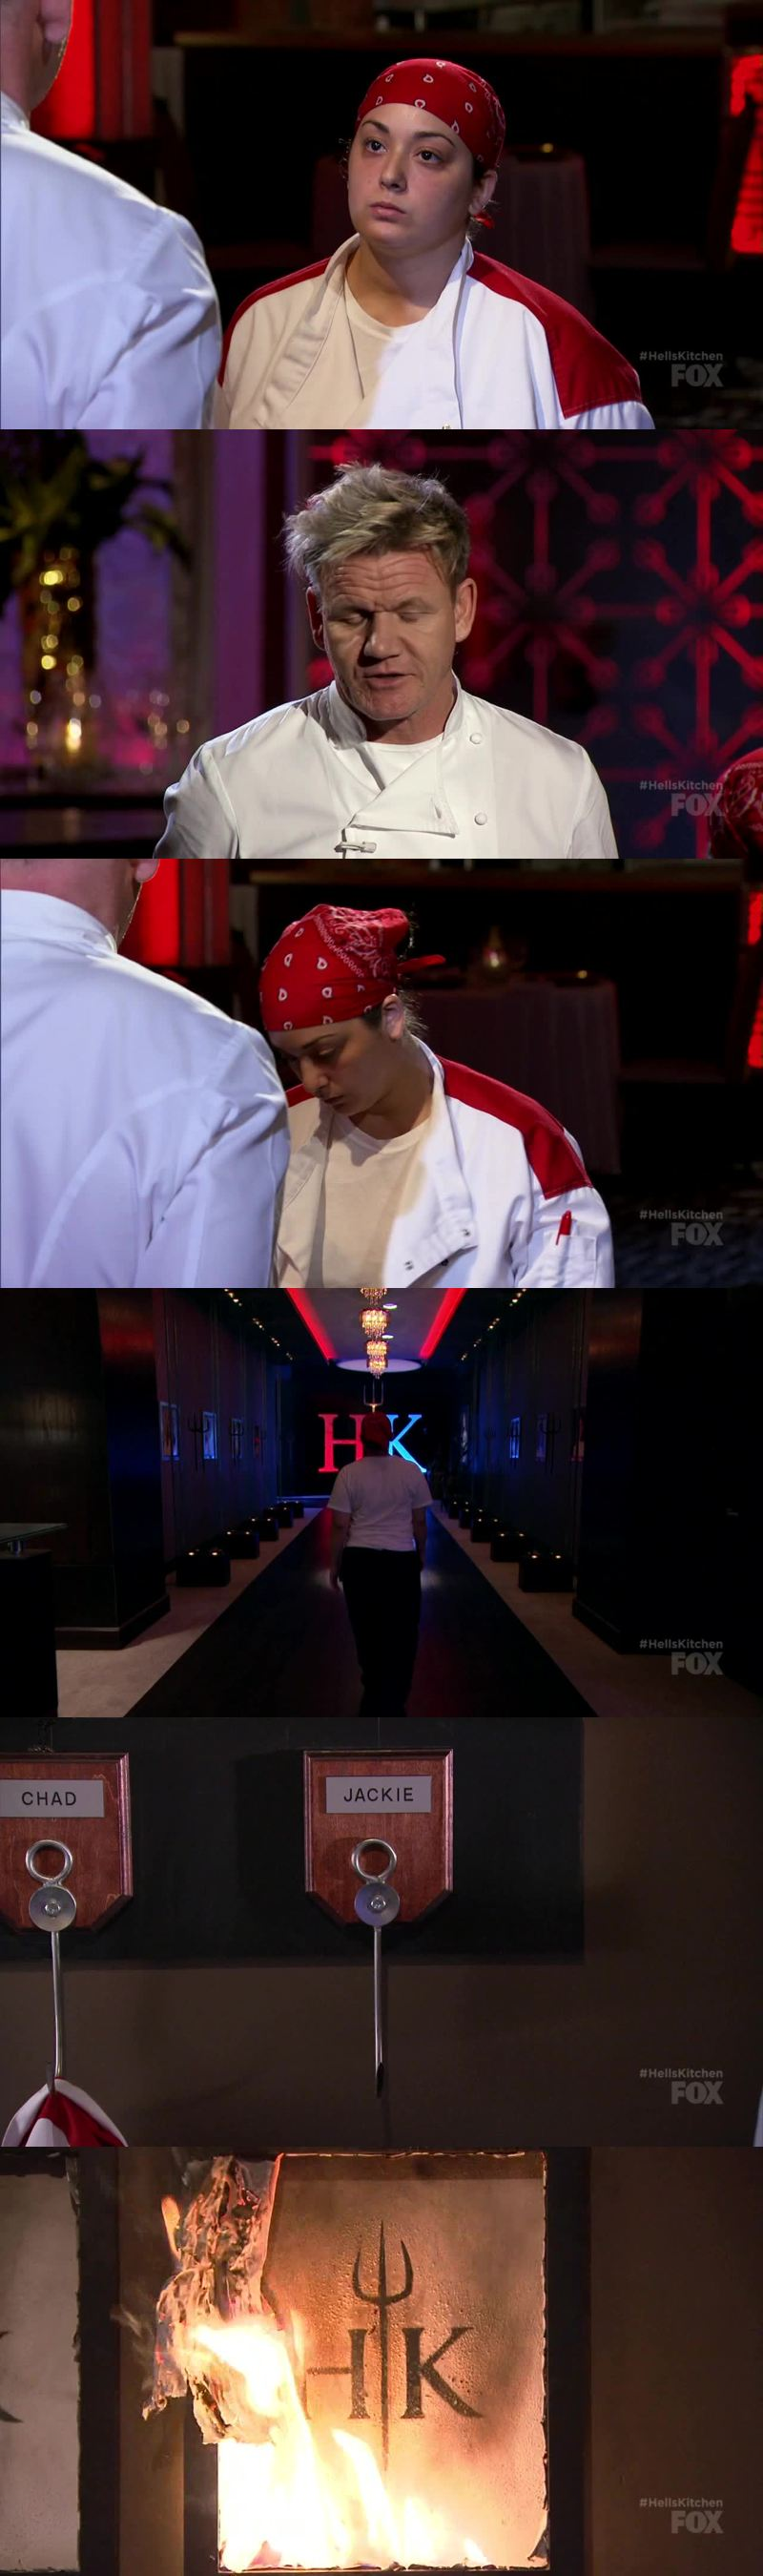 Tvshow Time Hell S Kitchen Us S15e11 8 Chefs Compete